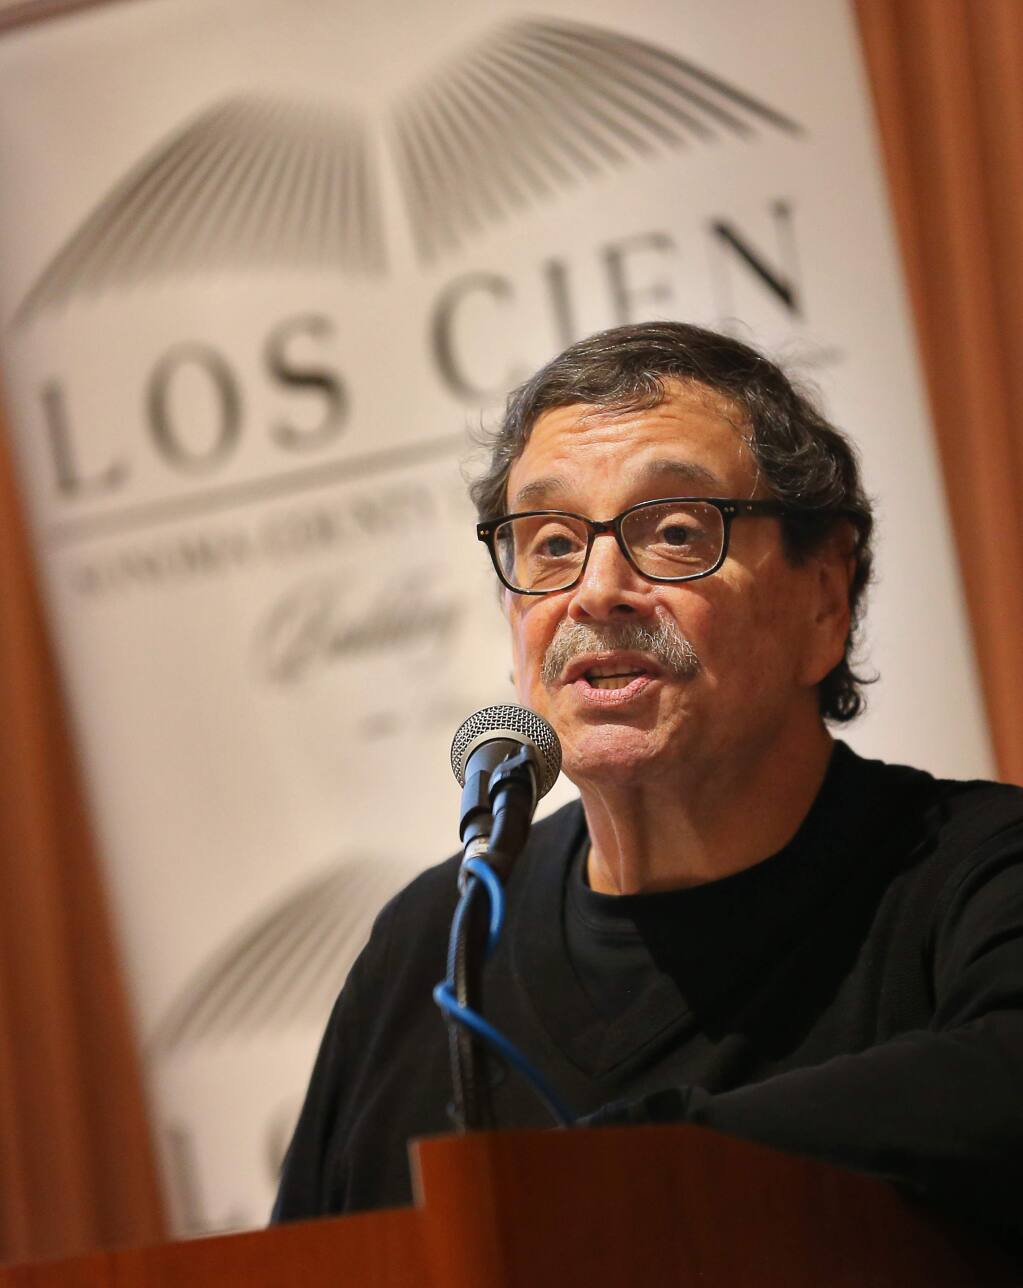 Herman J. Hernandez addresses the crowd during a Los Cien luncheon in Santa Rosa on Friday, February 15, 2019. (Christopher Chung/ The Press Democrat)